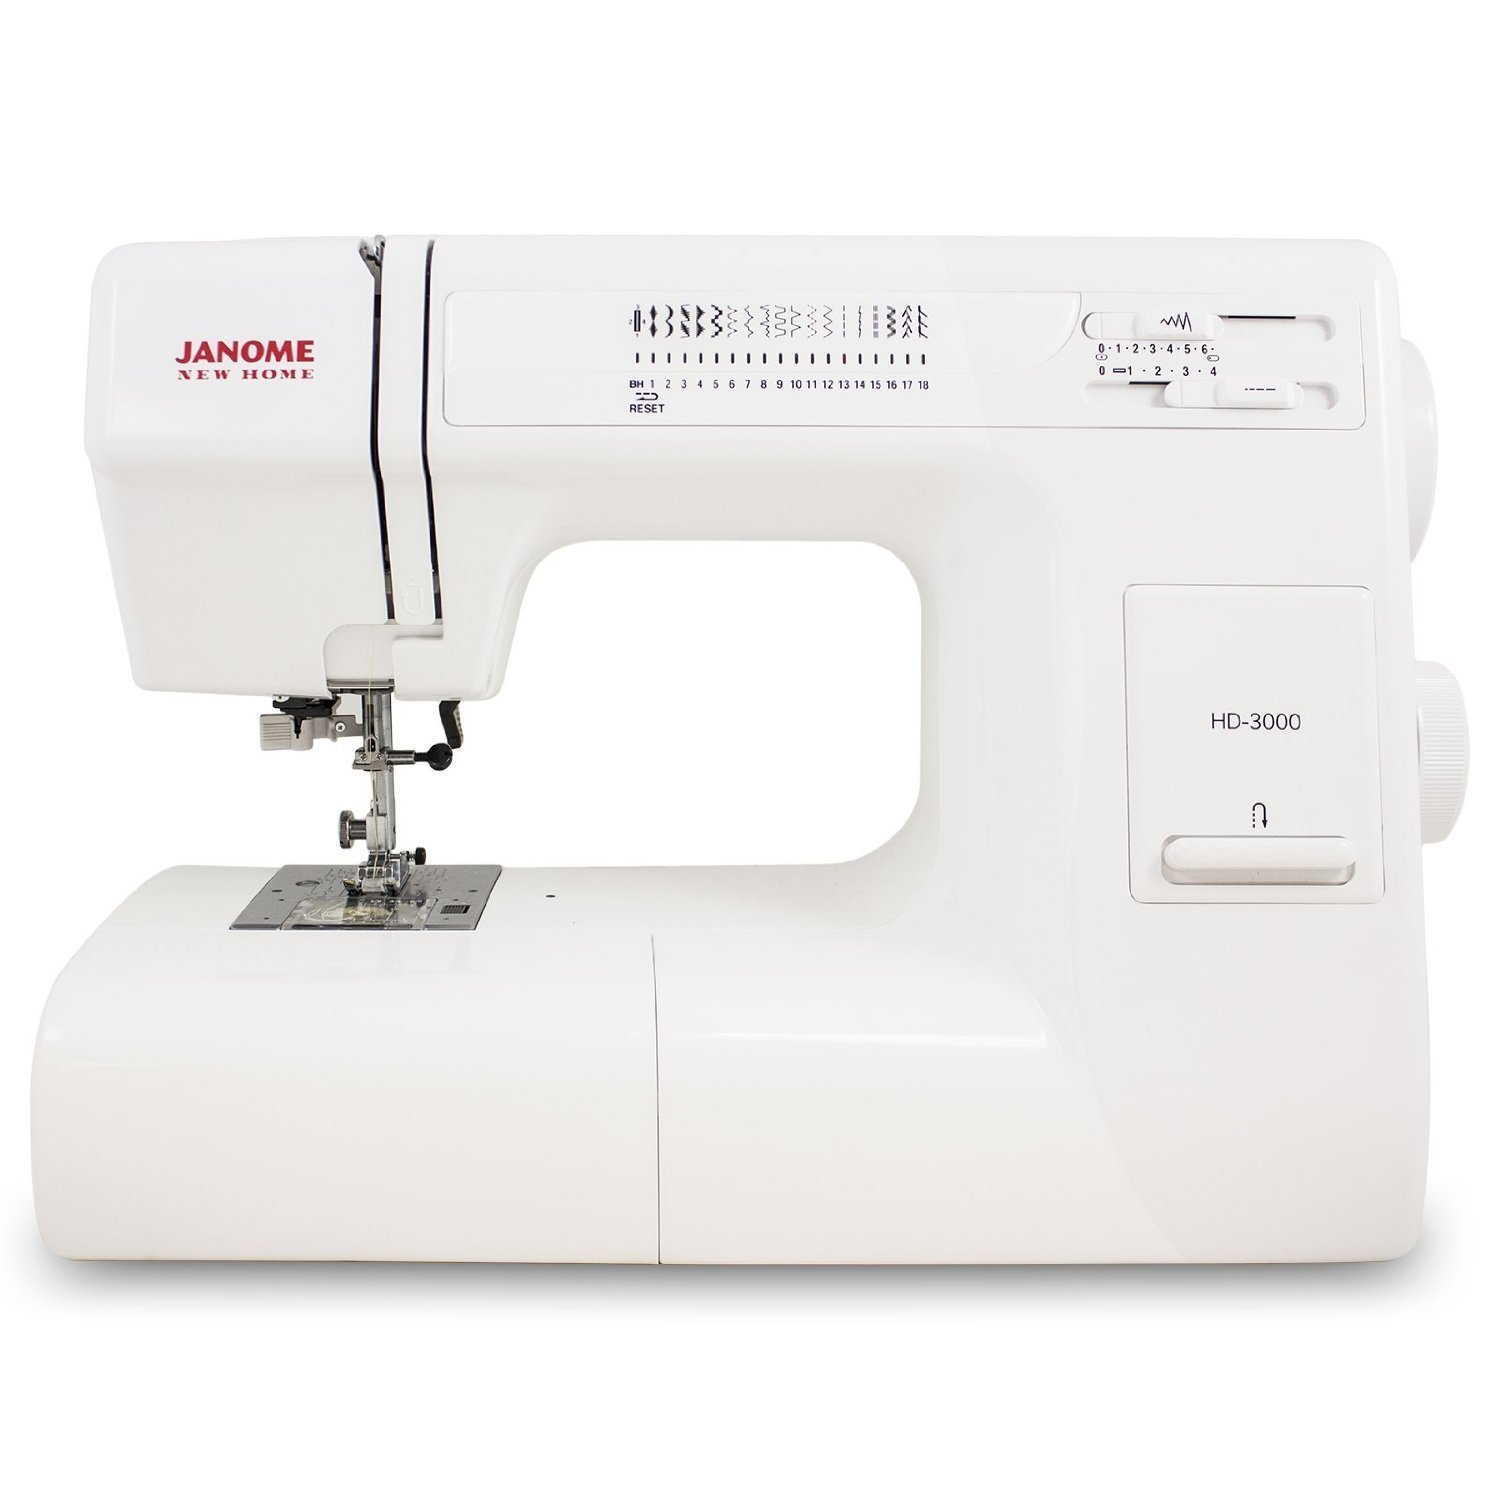 Janome Hd3000 Heavy Duty Sewing Machine With 18 Built In Stitches